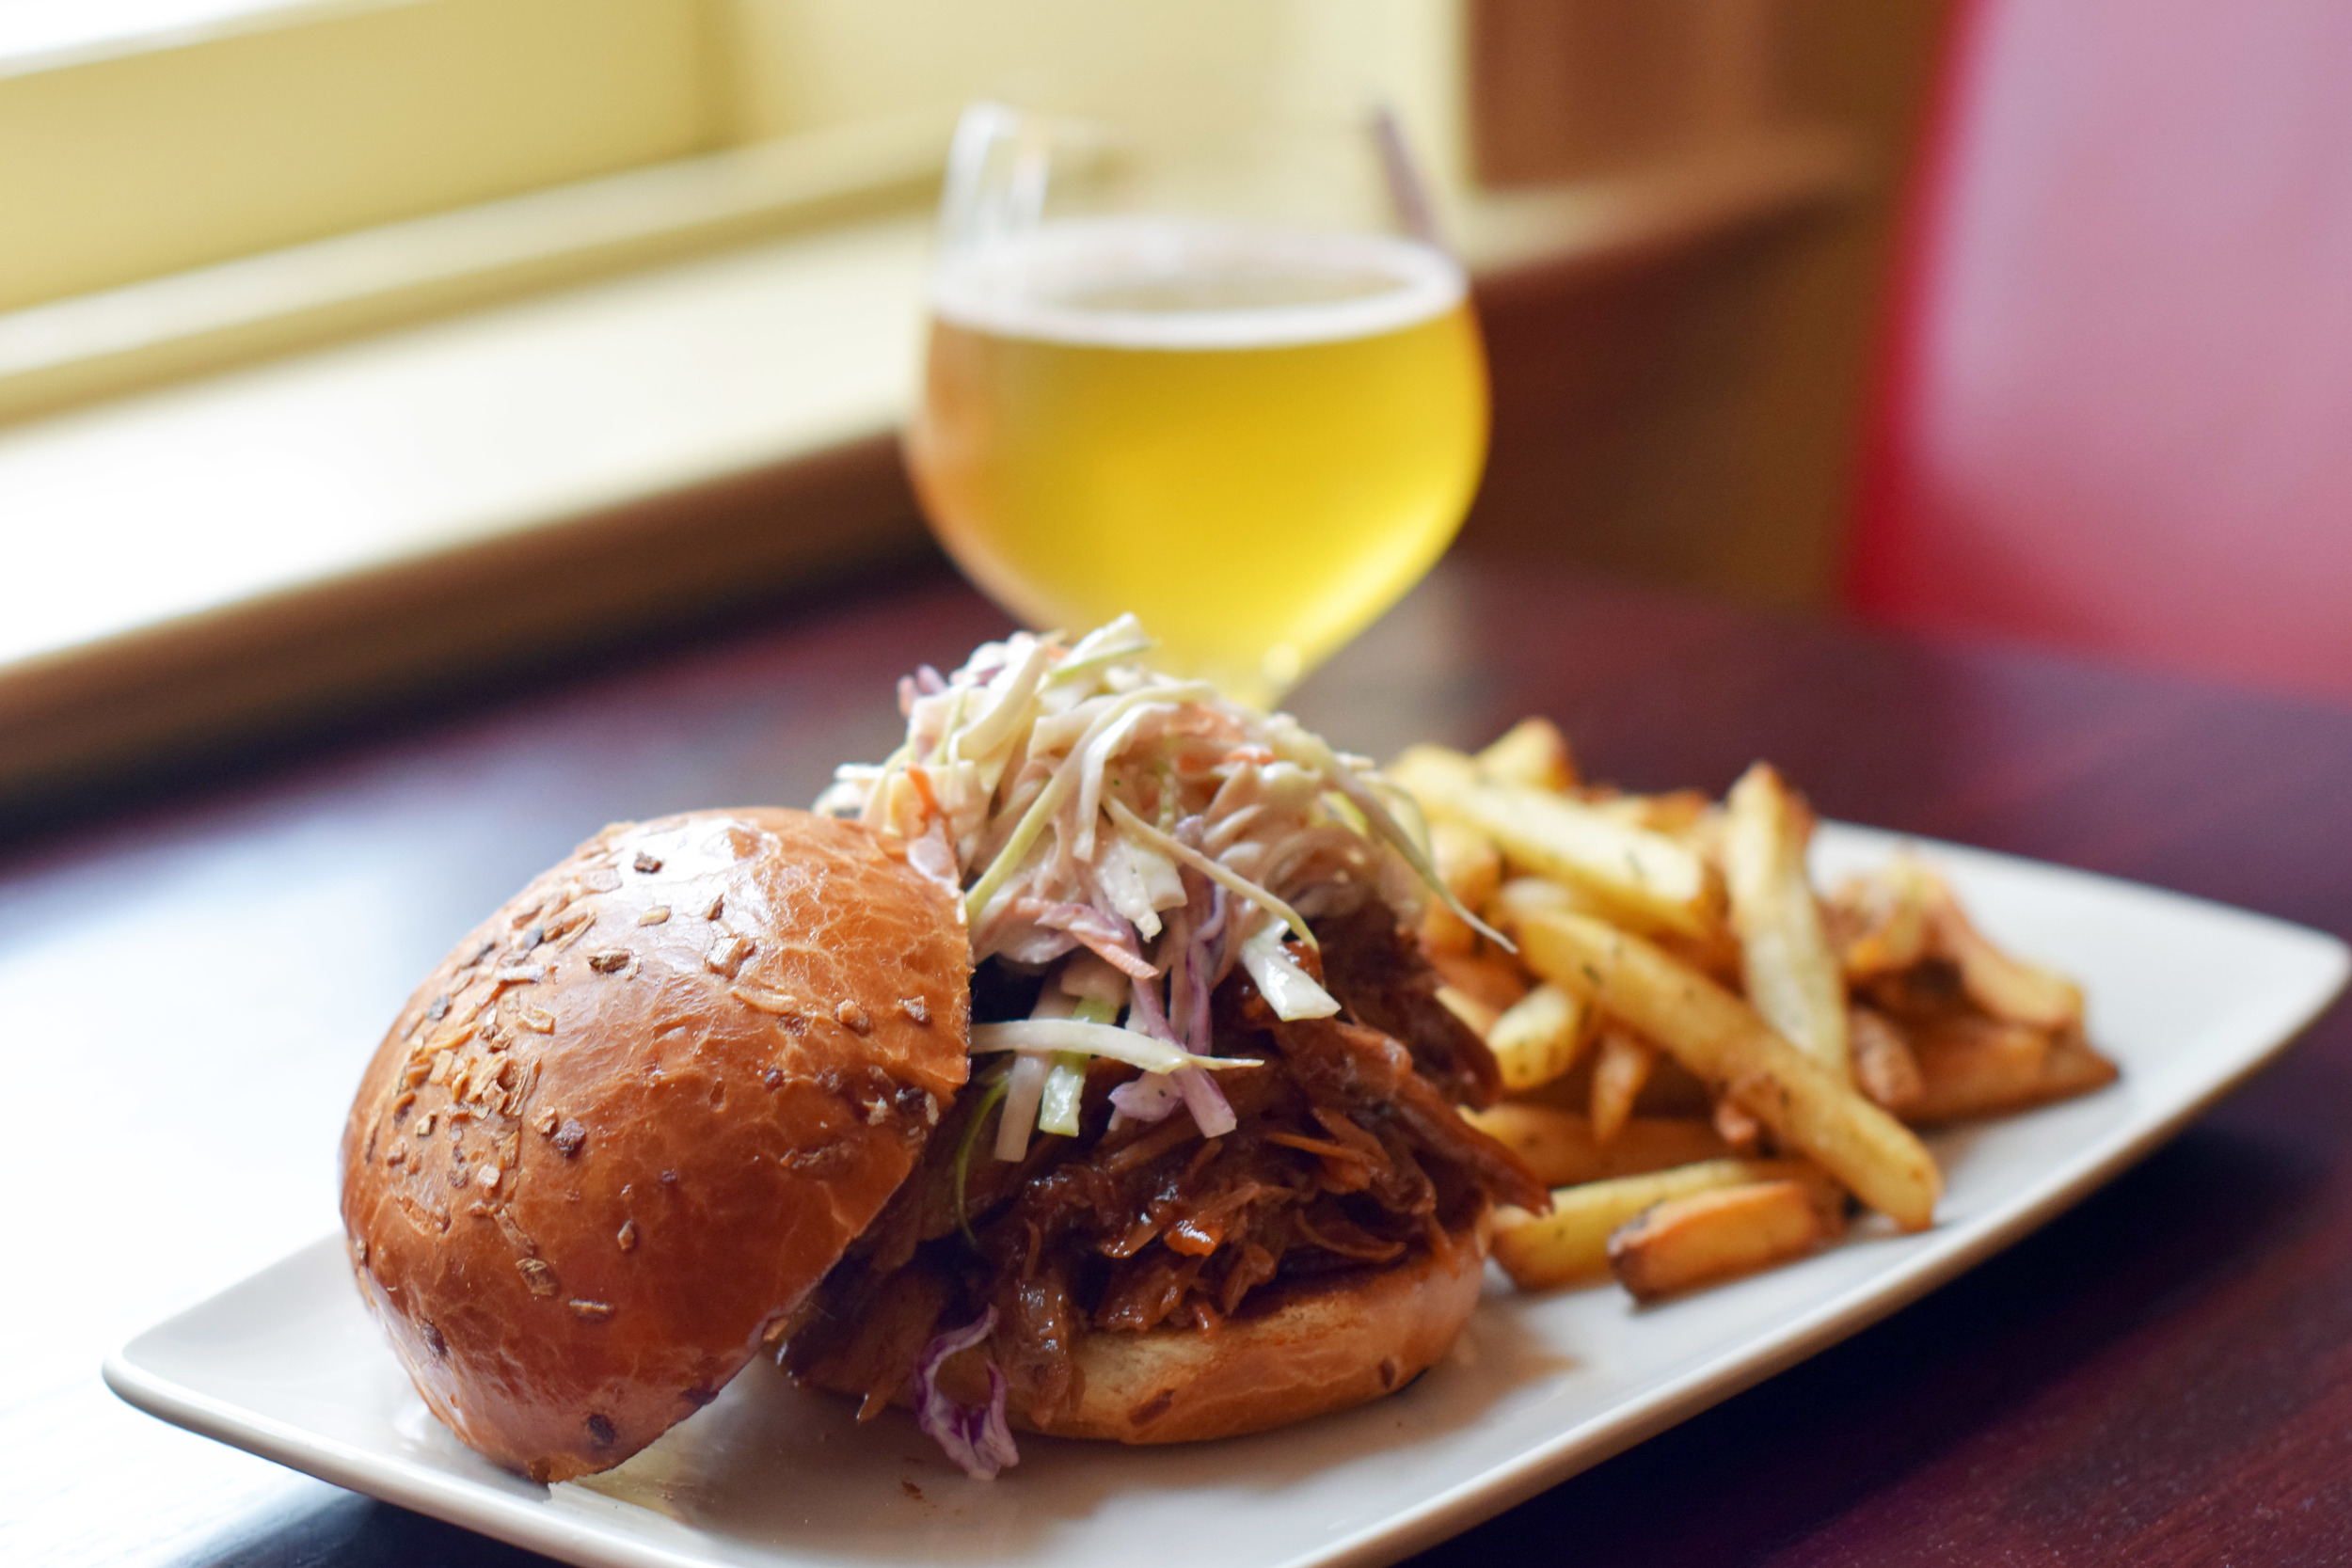 PULLED PORK SANDWICH house smoked pork, smoked apple BBQ, brioche bun, slaw, garlic confit & rosemary fries